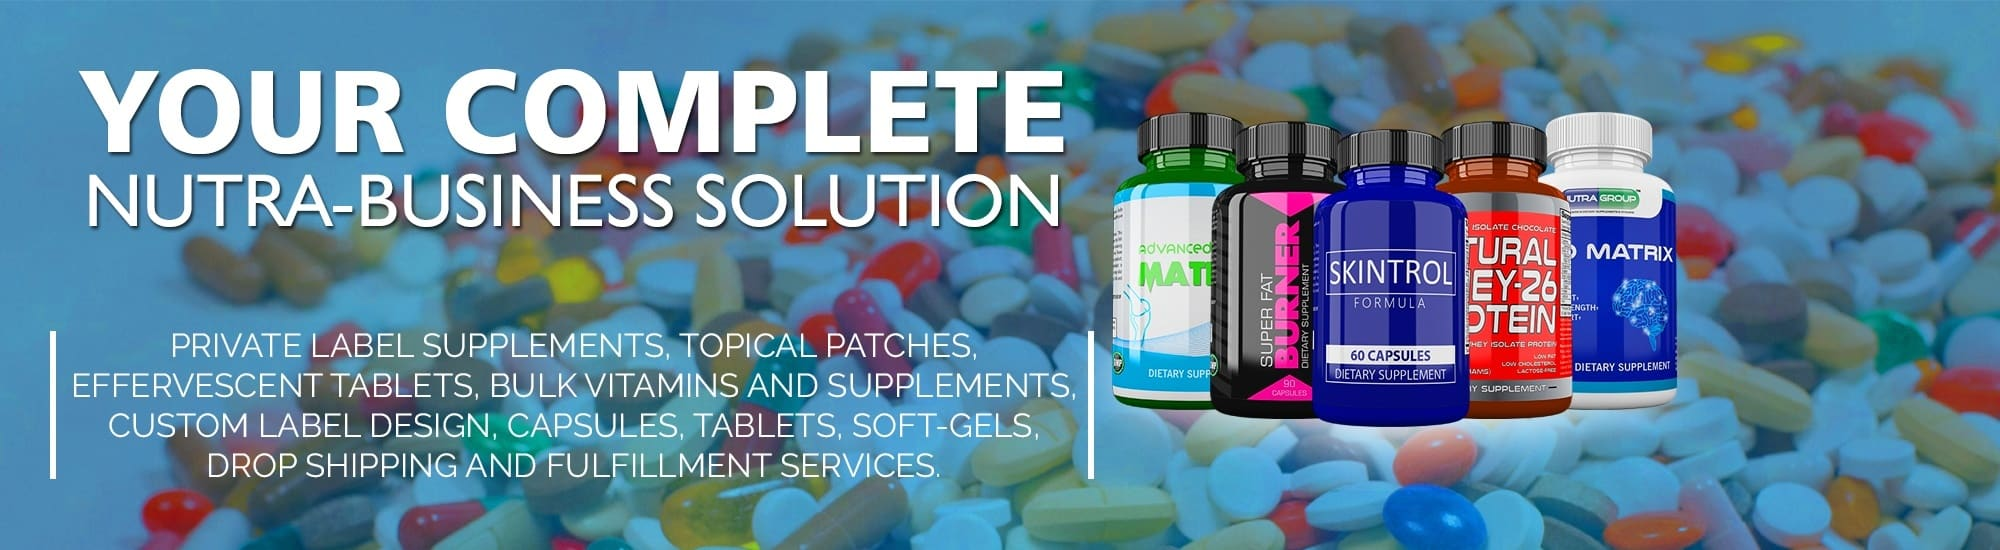 Private Label Supplements & Vitamins